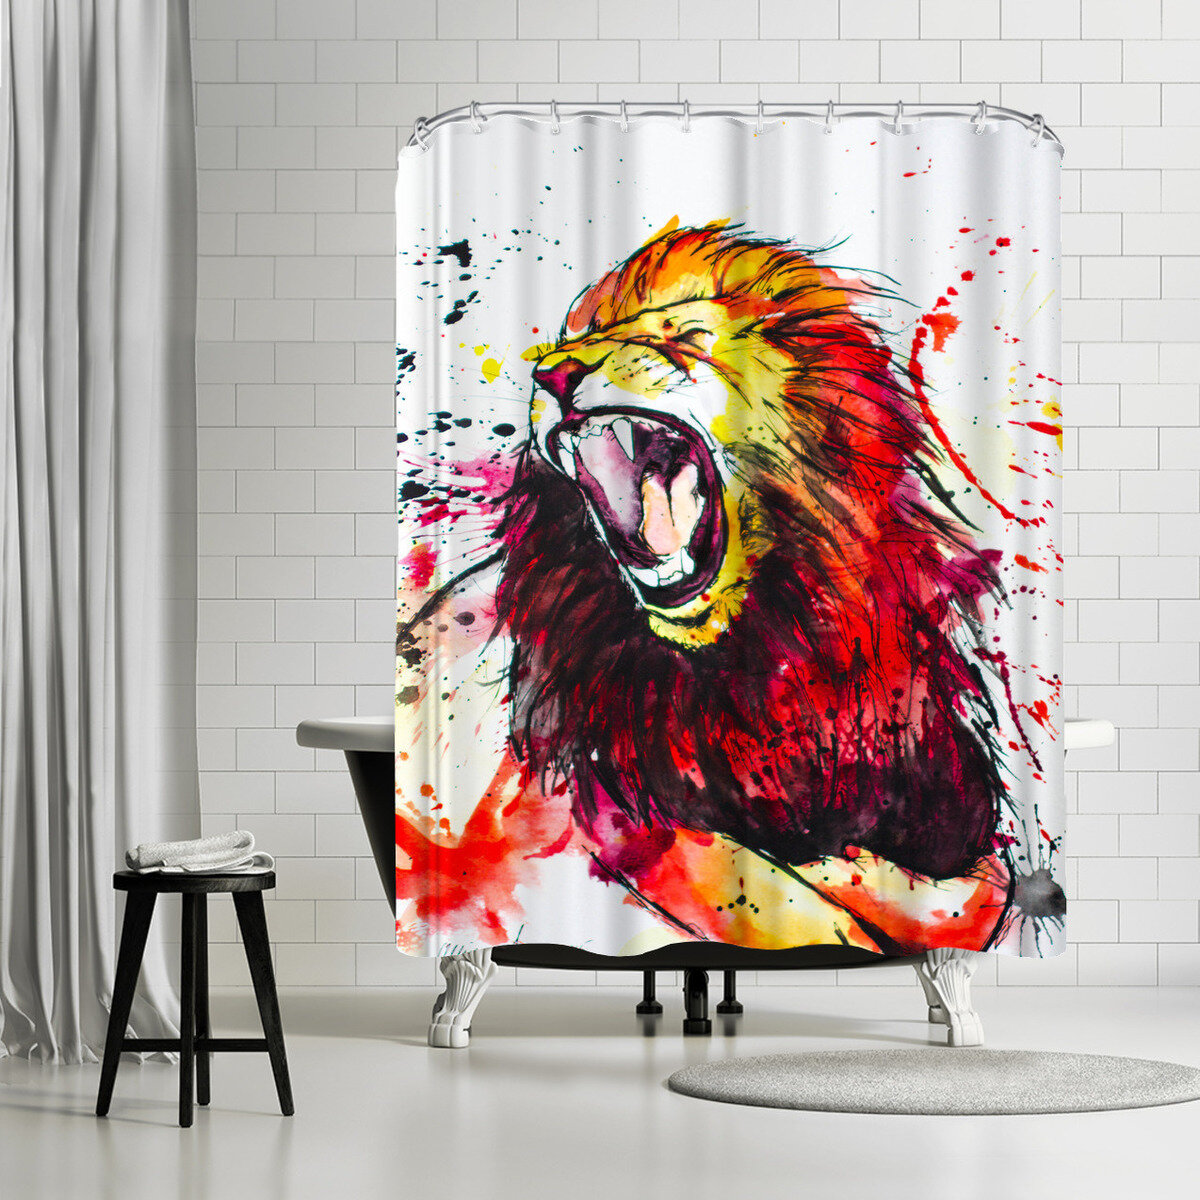 East Urban Home Allison Gray Roaring Lion Shower Curtain